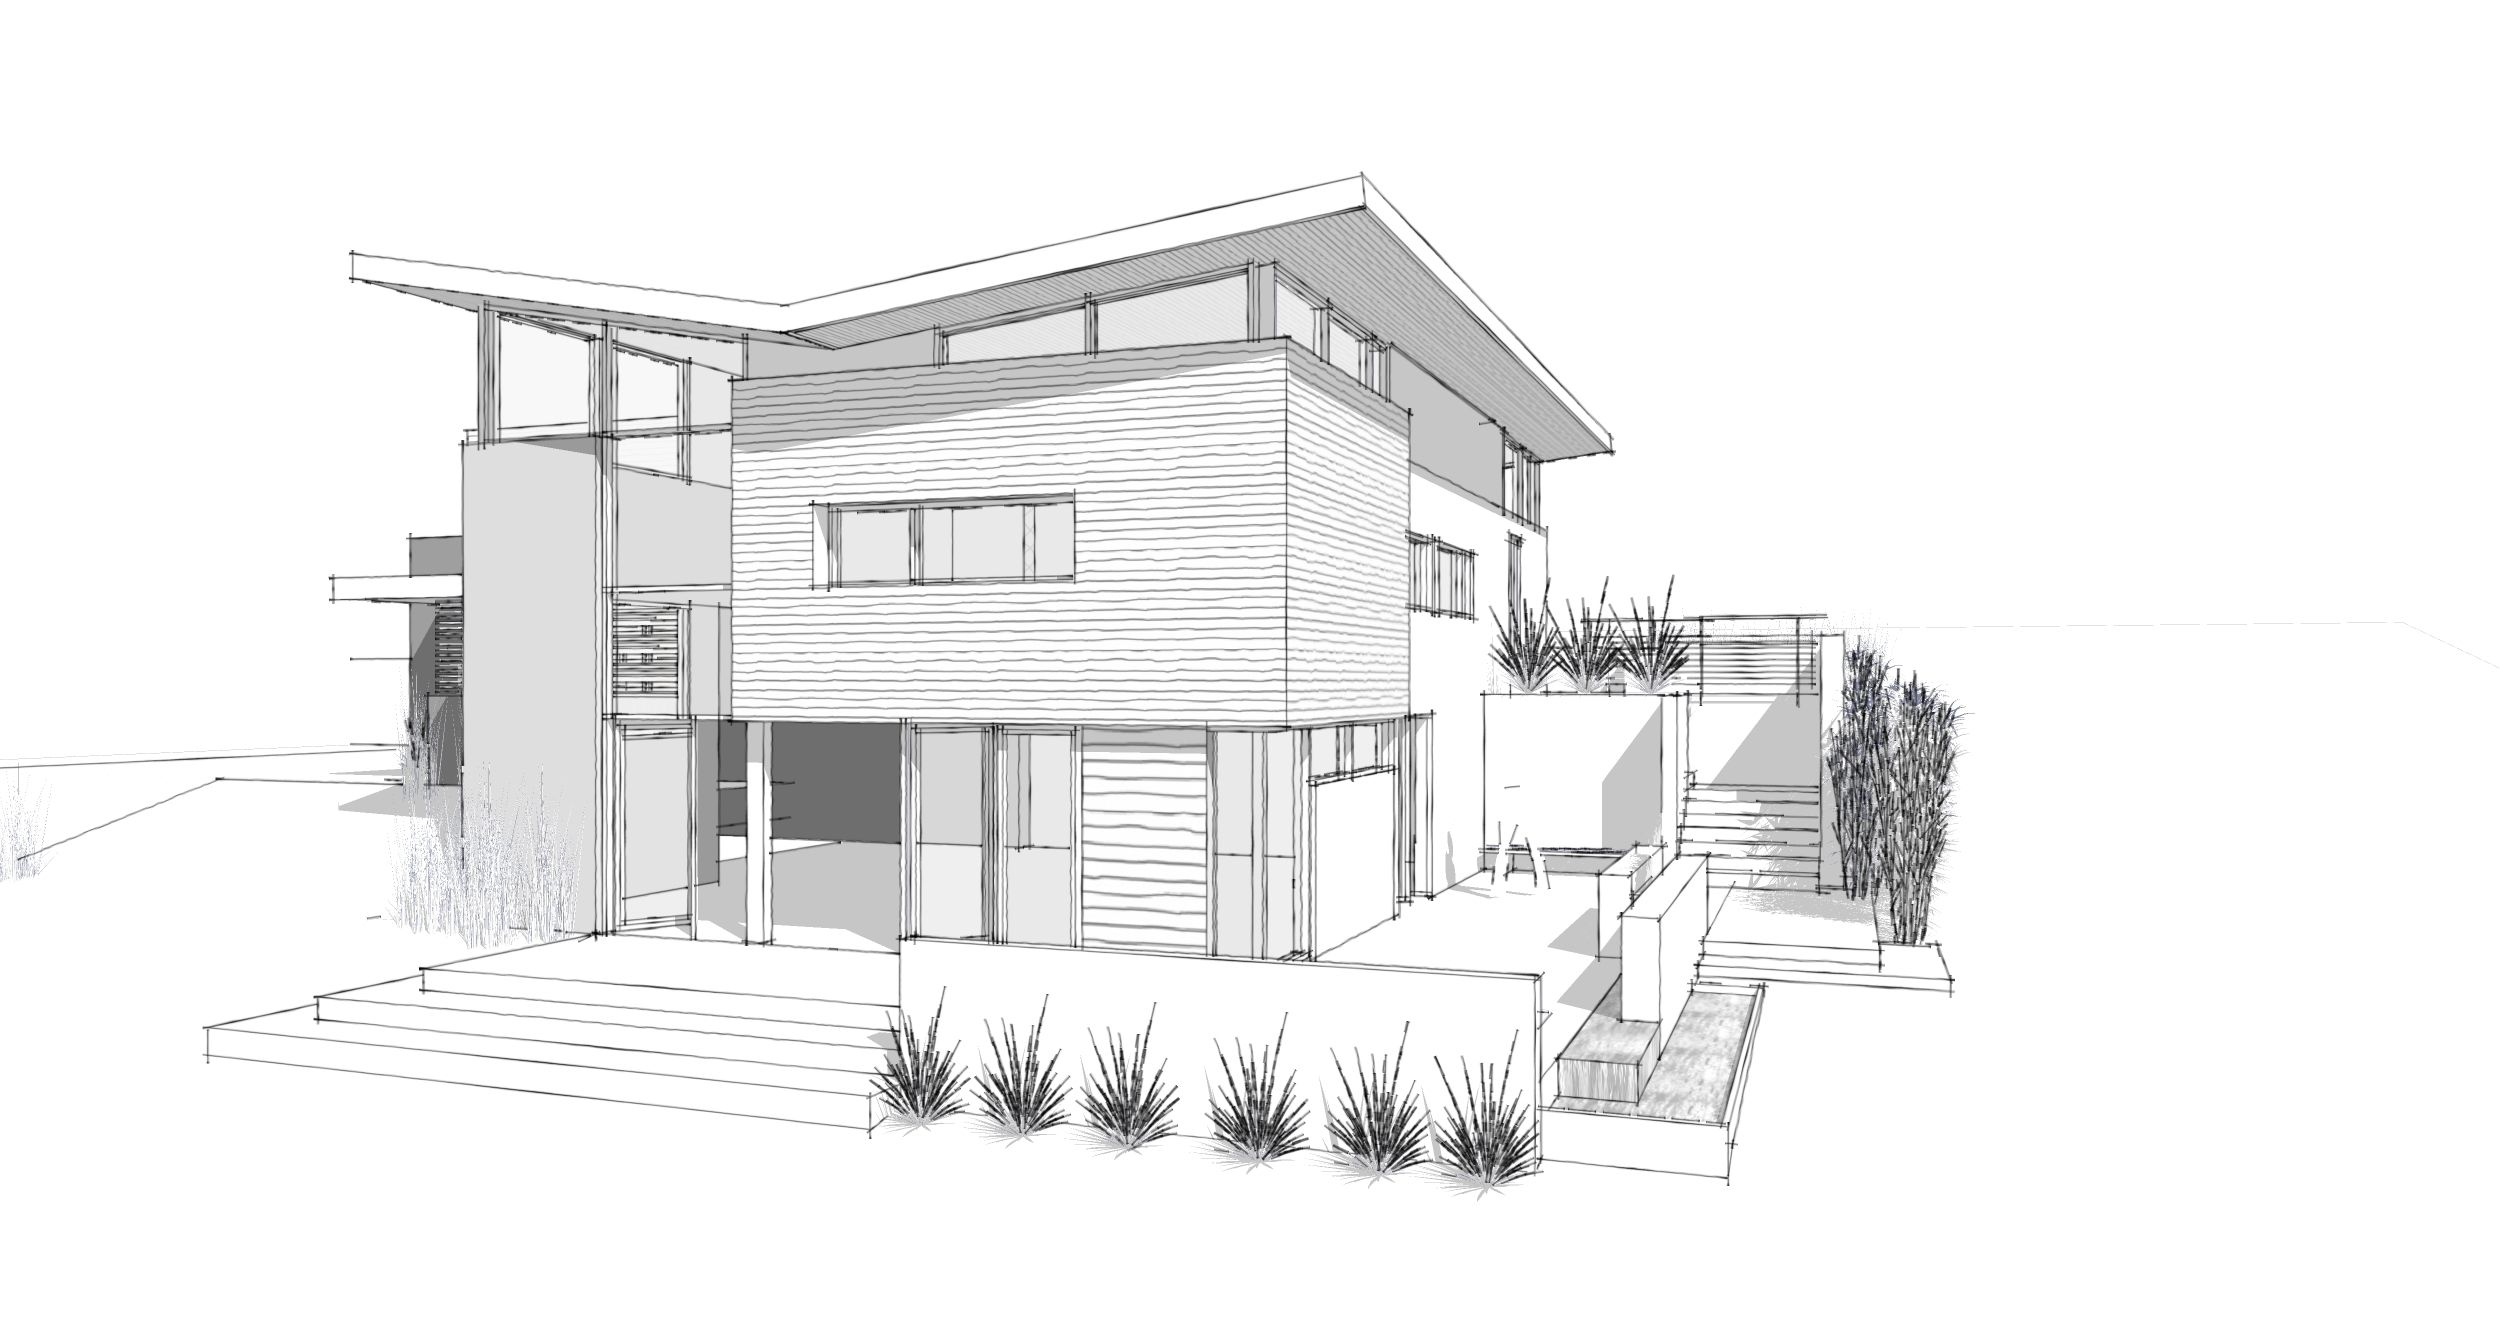 Modern home architecture sketches design ideas 13435 for House drawing plan layout